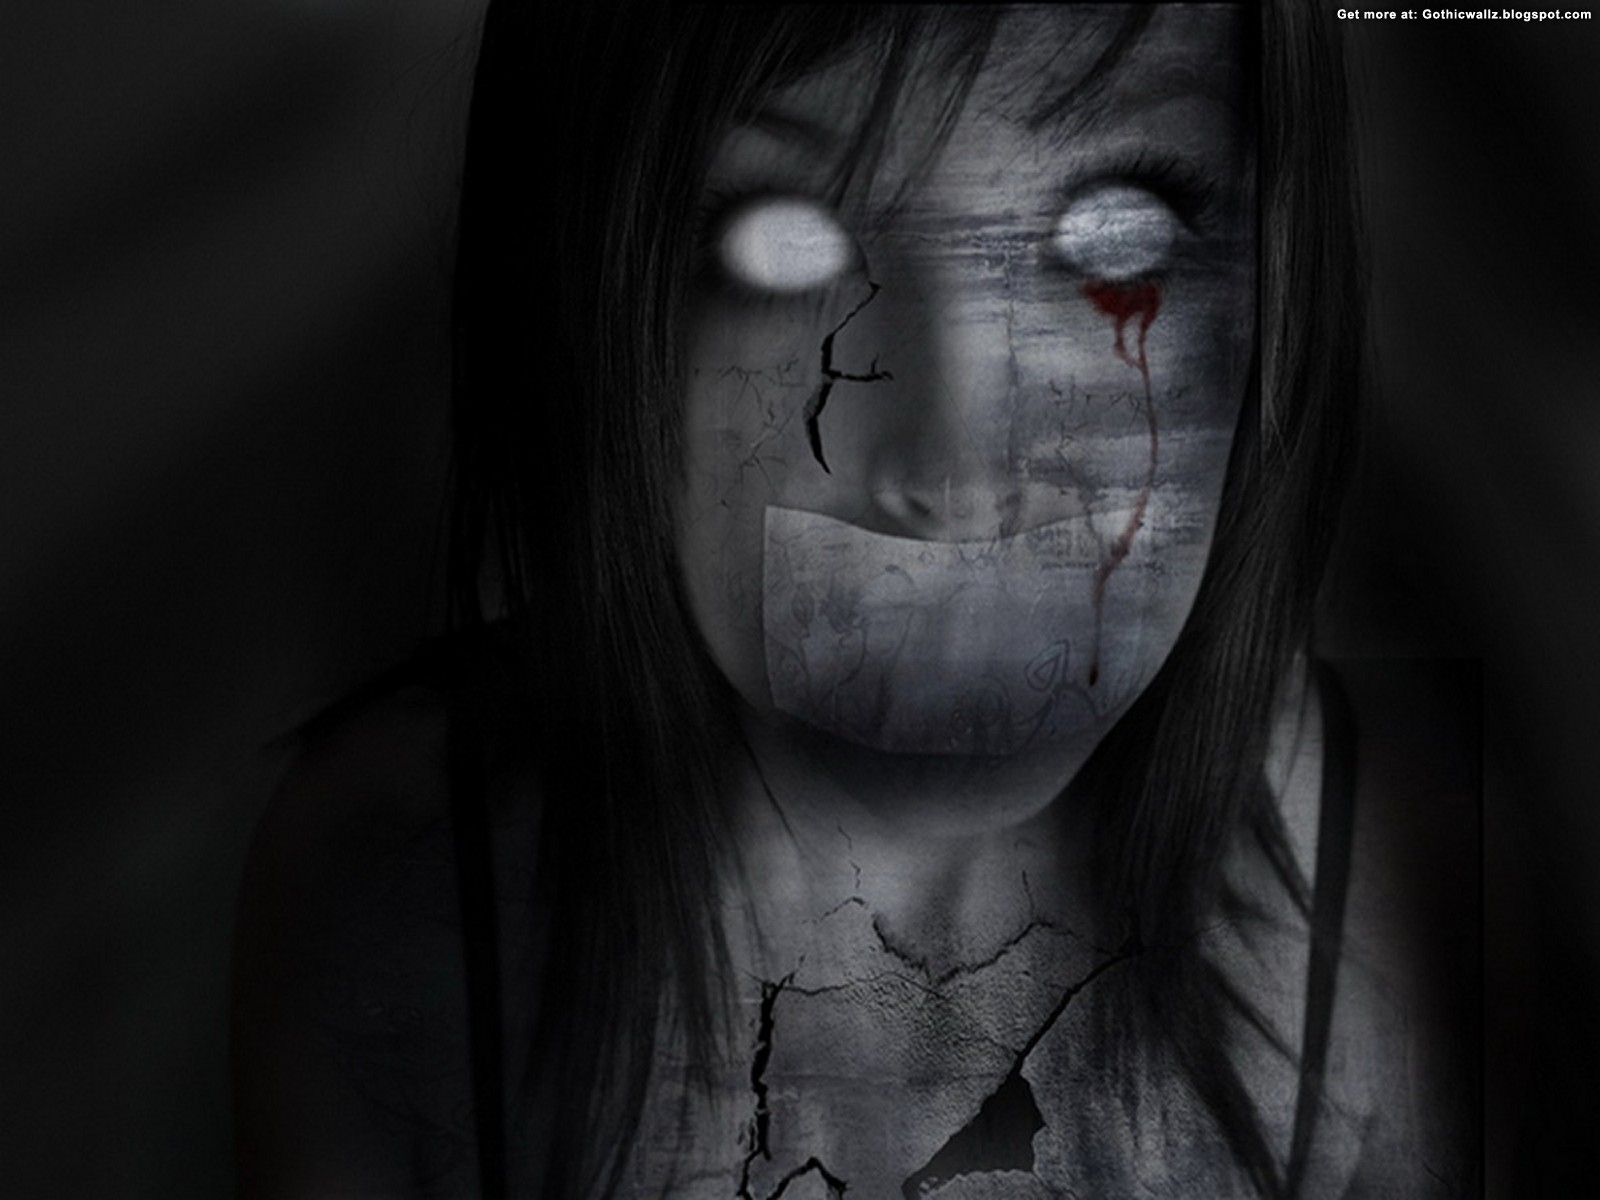 Melisenta | Gothic Wallpaper Download